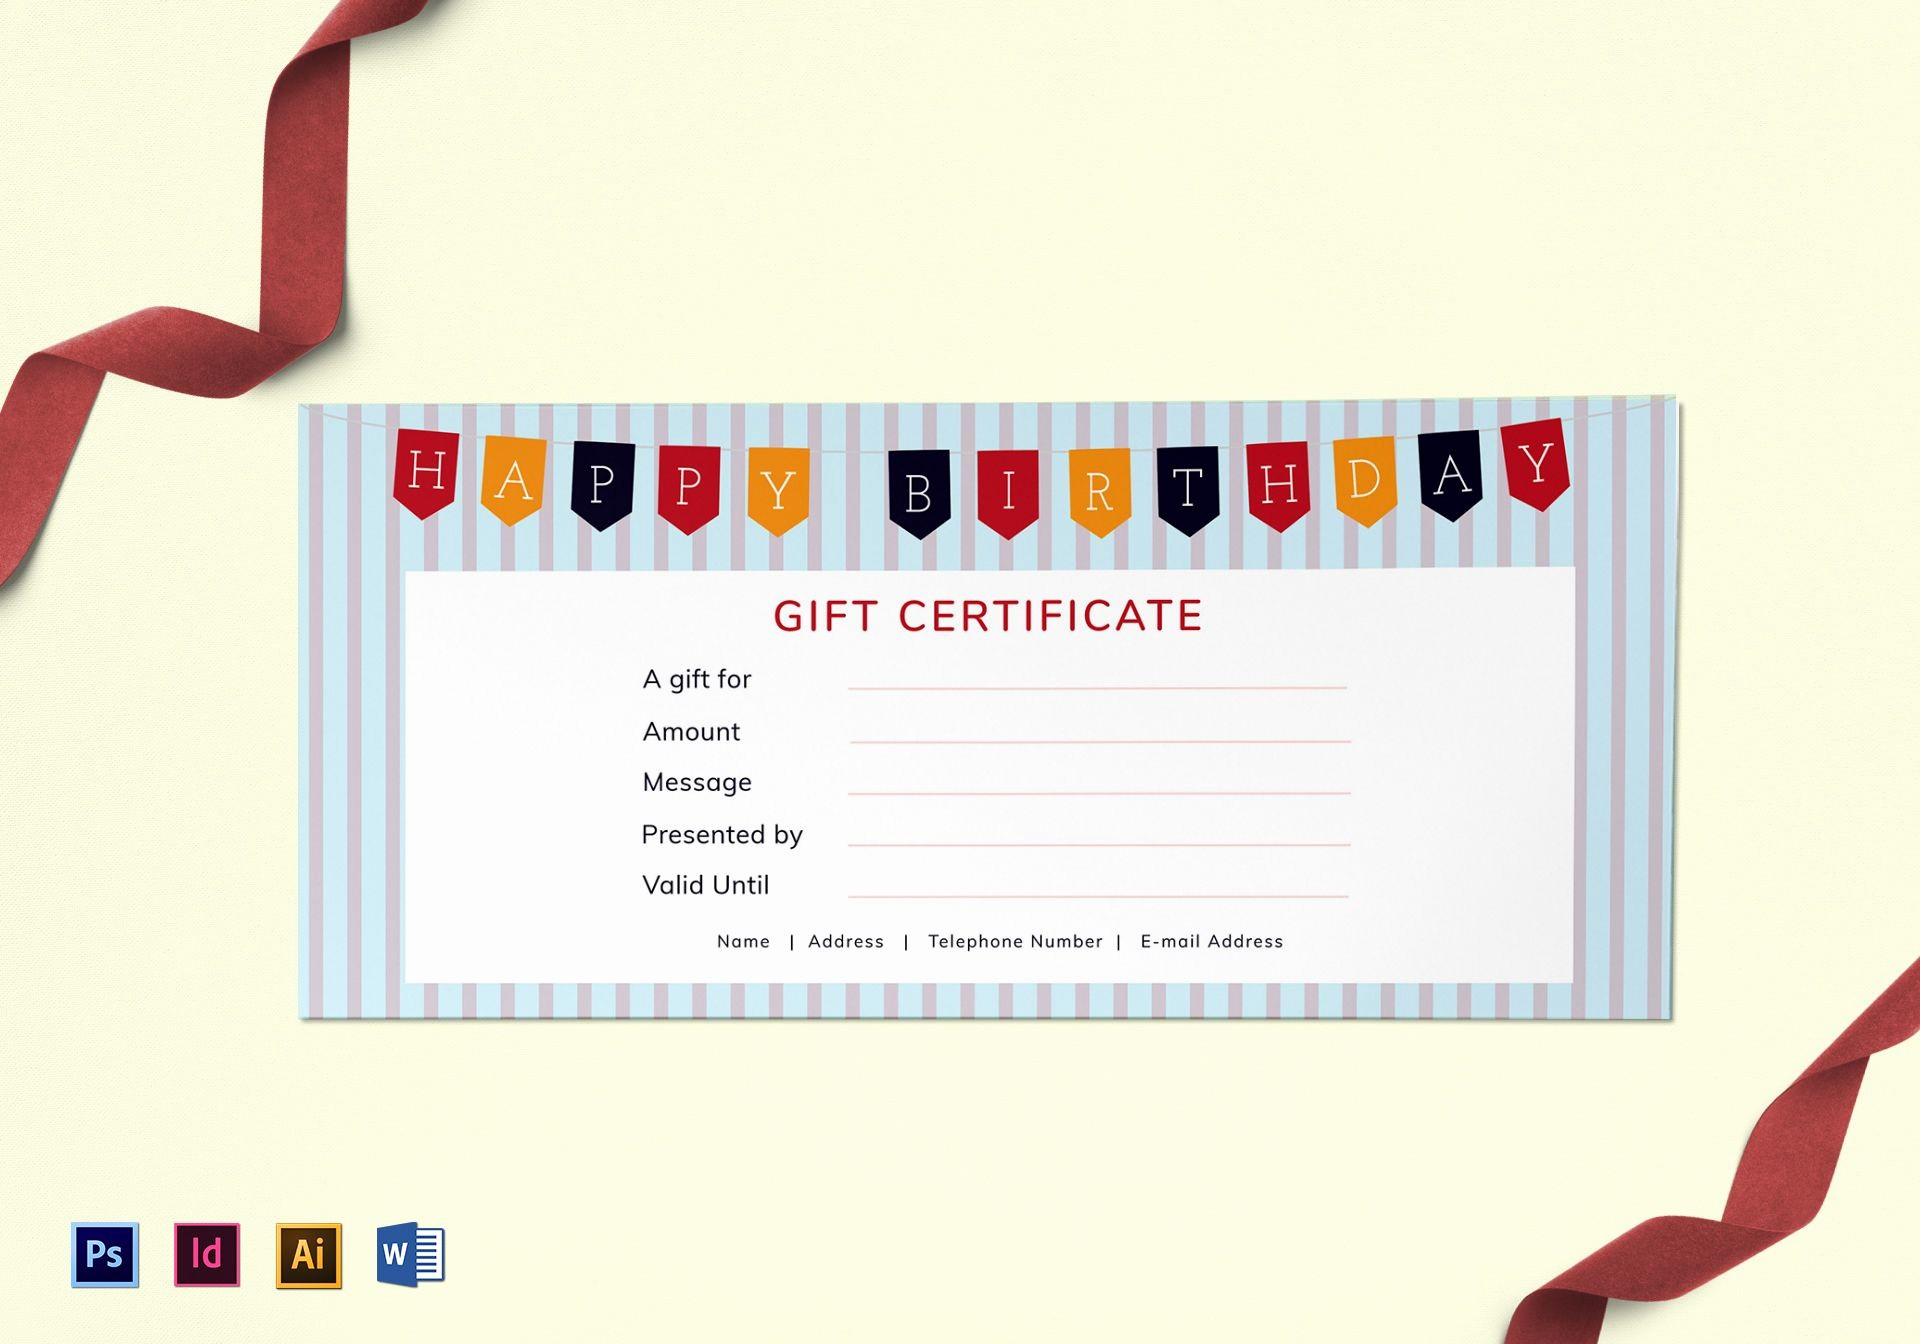 Birthday Gift Certificate Template Word Best Of Happy Birthday Gift Certificate Design Template In Psd